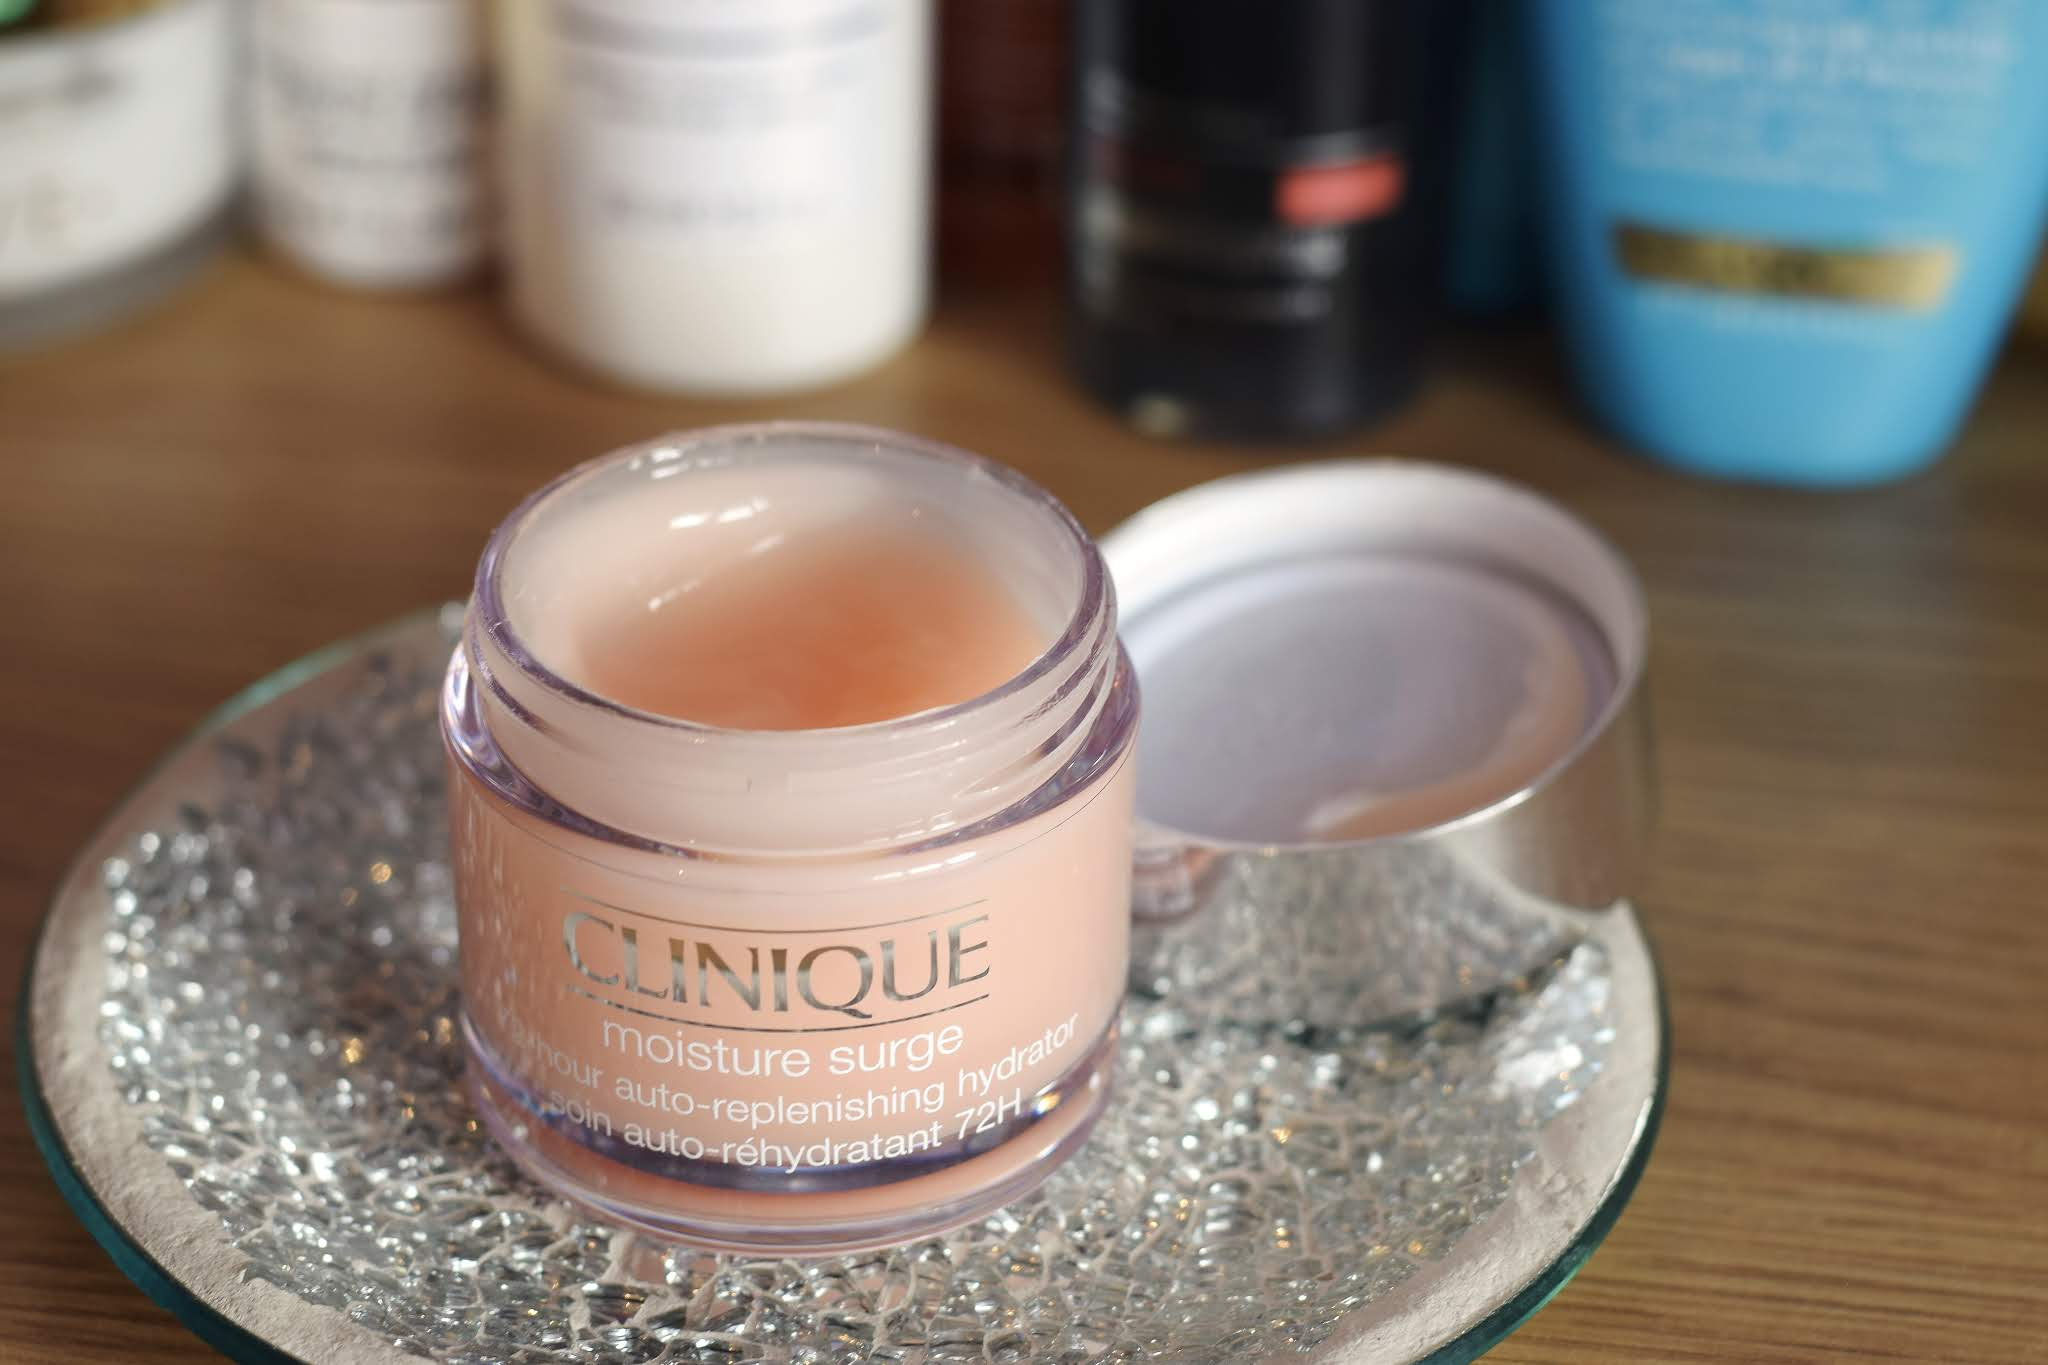 A pot of Clinique Moisture Surge with the lid off so the moisturiser can be seen